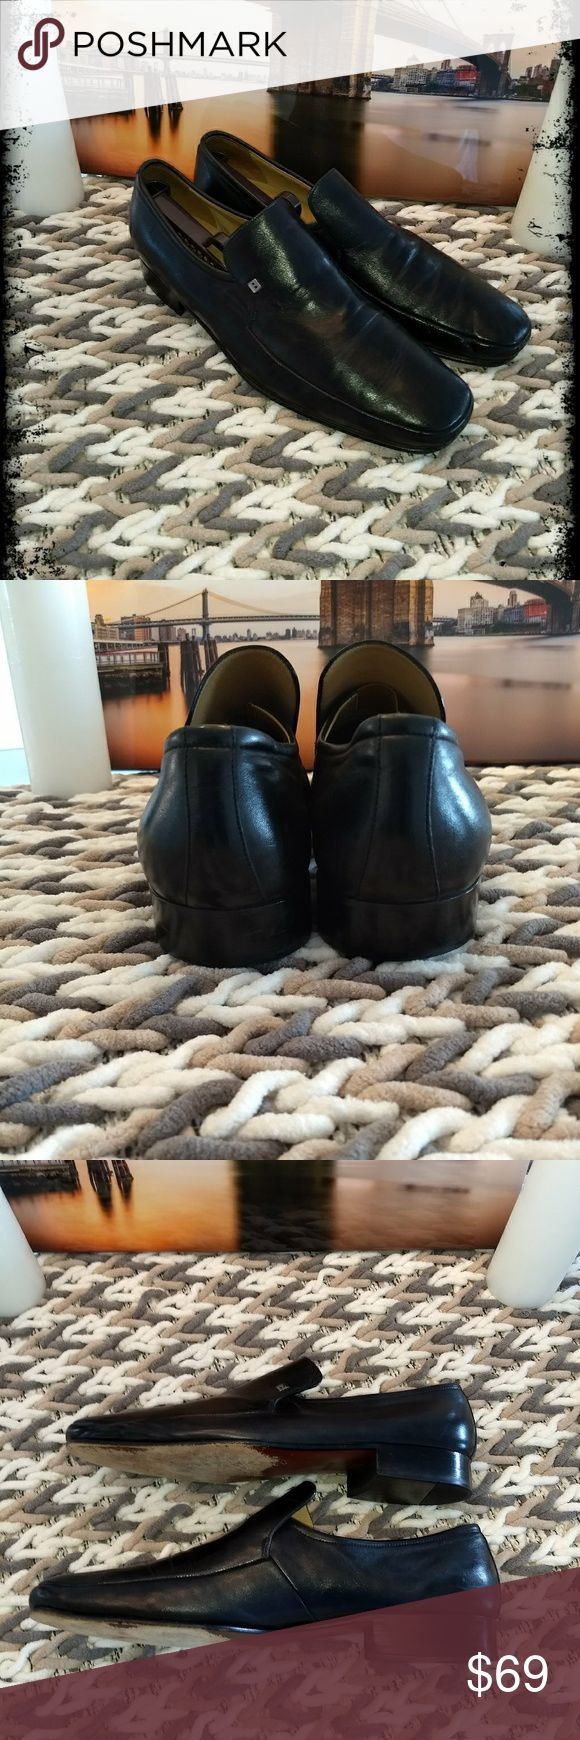 👌⭐️ BALLY LOAFERS, EXCELLENT CONDITION!!⭐️SALE... Black, super soft leather Bally men's loafer. Excellent condition, per the photos. Gently worn. Size 13D 1/2. MODA BELLA BOUTIQUE, PALM BEACH, FL. Bally Shoes Loafers & Slip-Ons